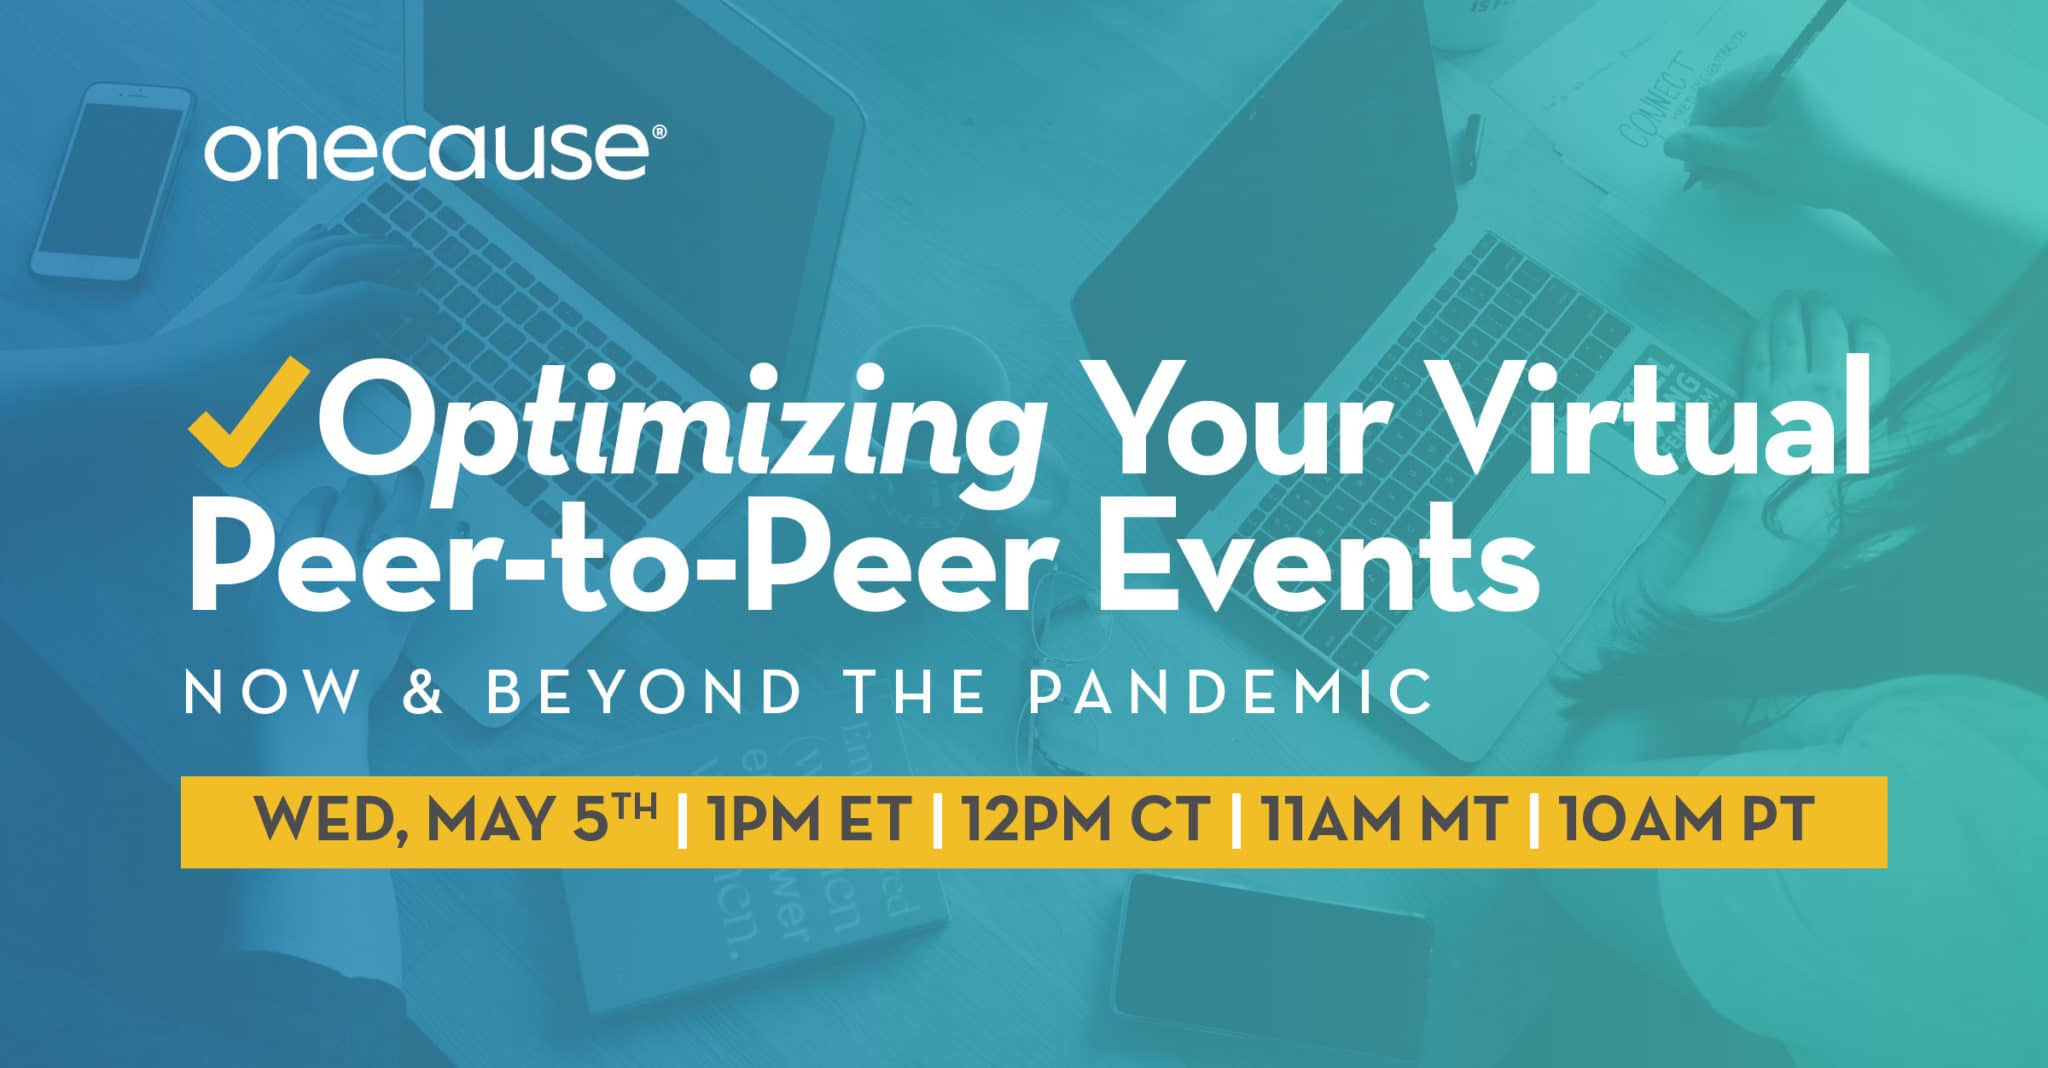 Optimize your Virtual Peer-to-Peer